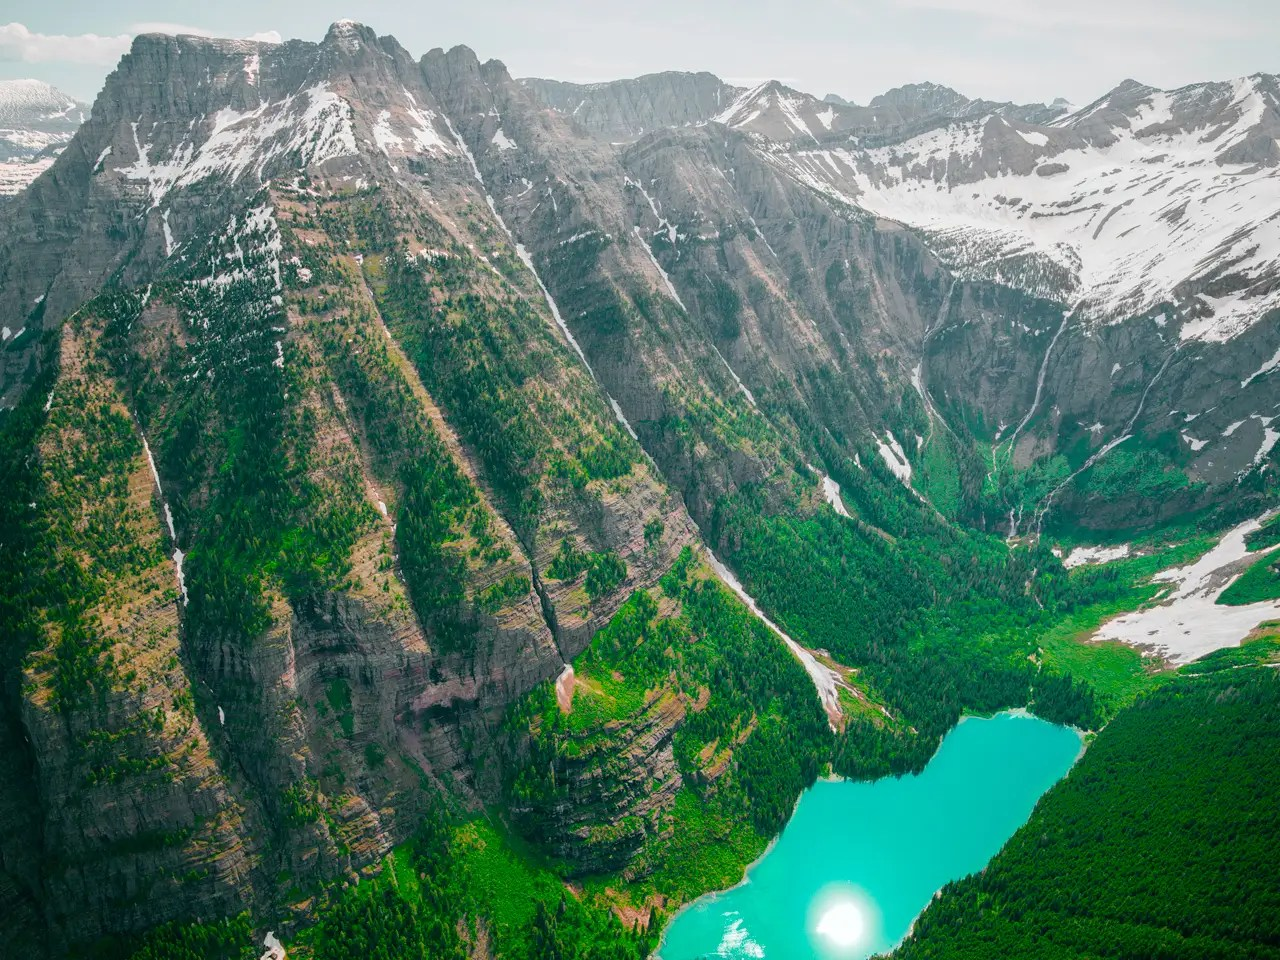 When it comes to sweeping landscapes, Senatori loves Montana, especially Glacier National Park.